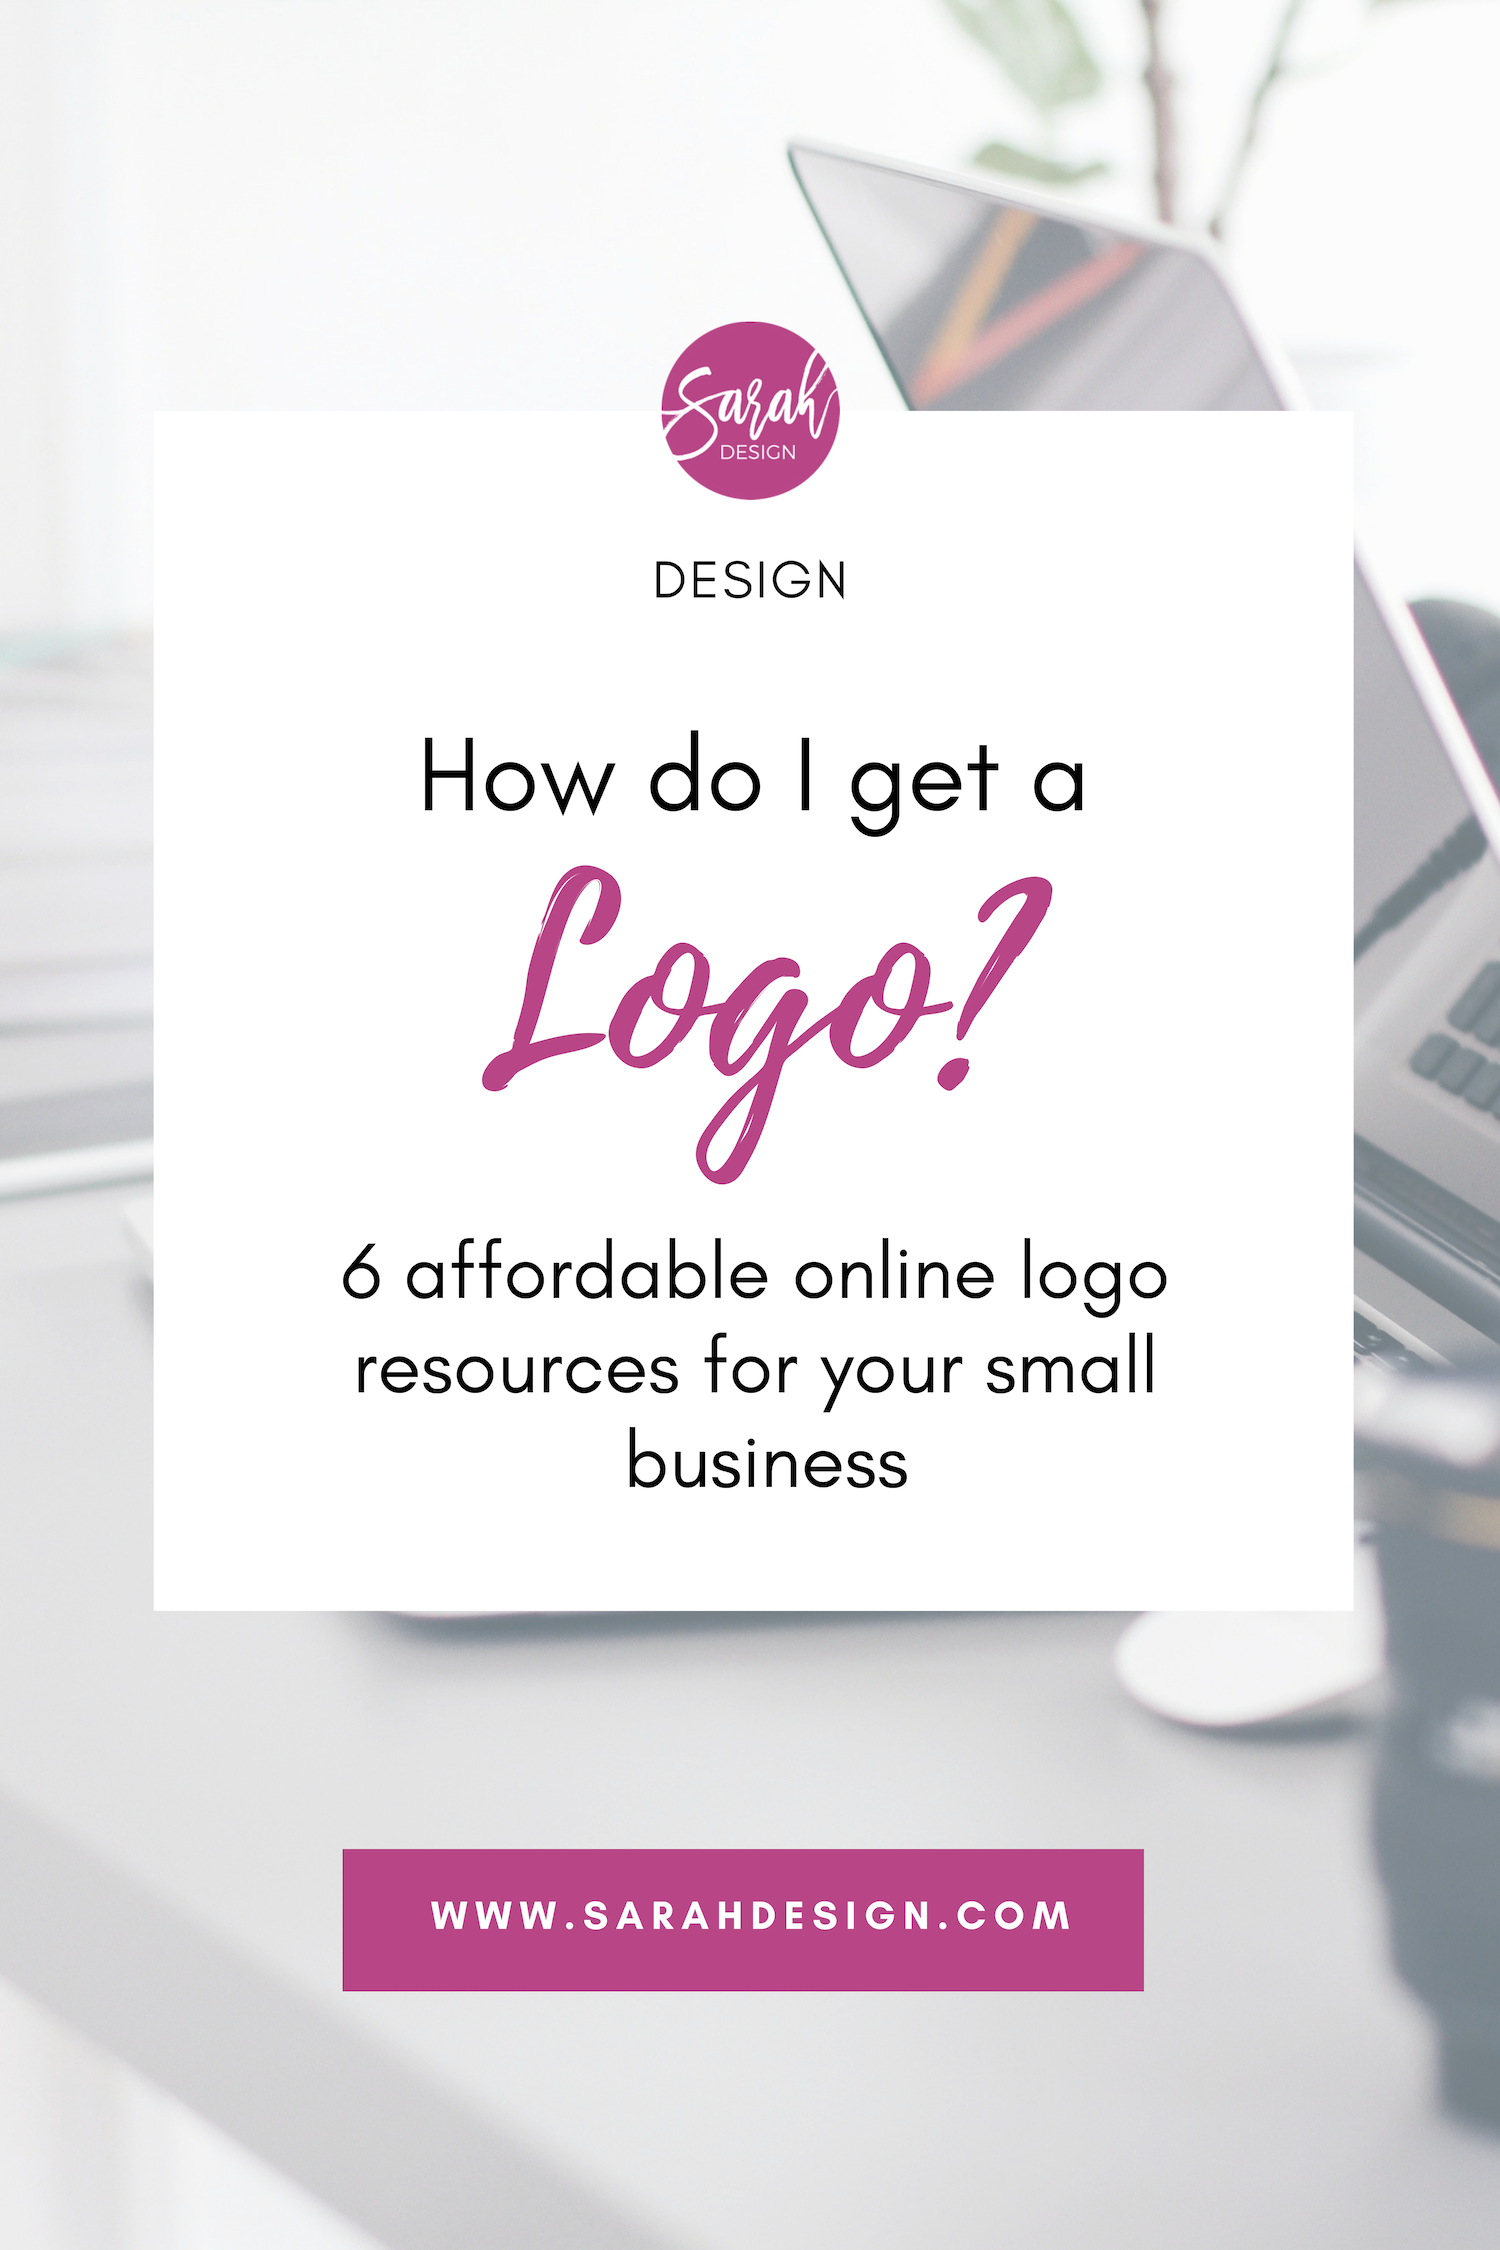 6 affordable online logo resources for your small business by sarahdesign.com